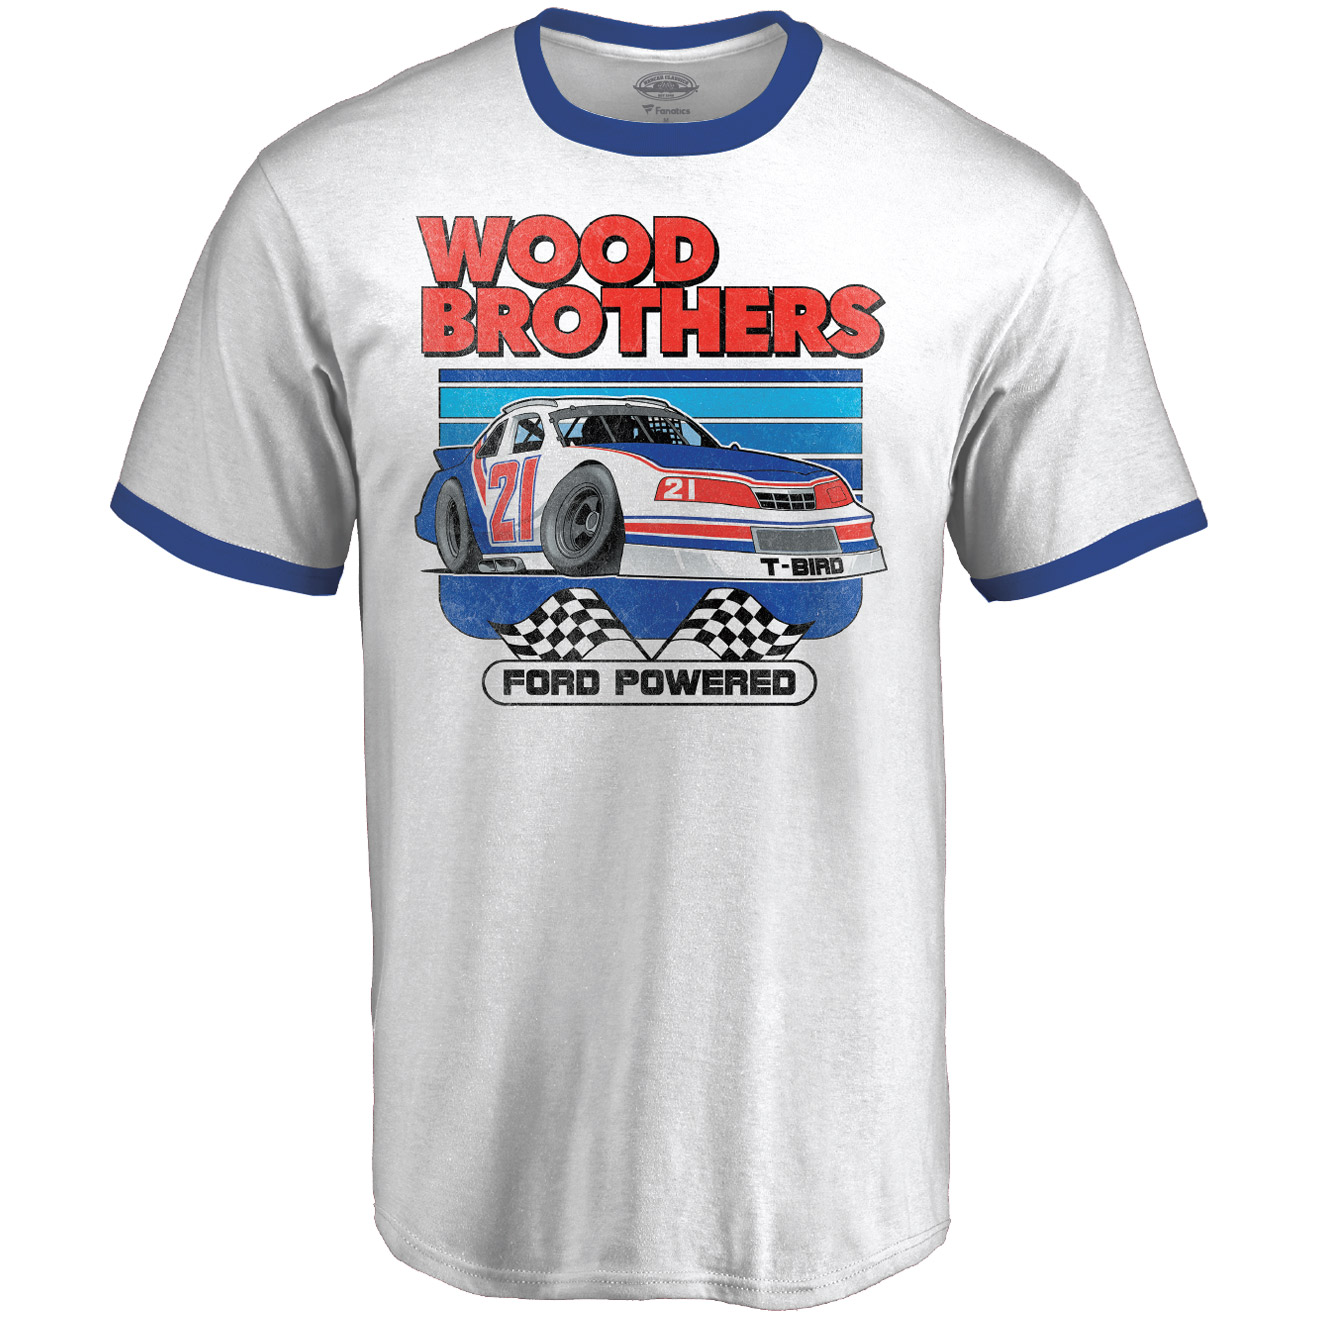 Wood Brothers Racing Fanatics Branded Ringer T-Shirt - White